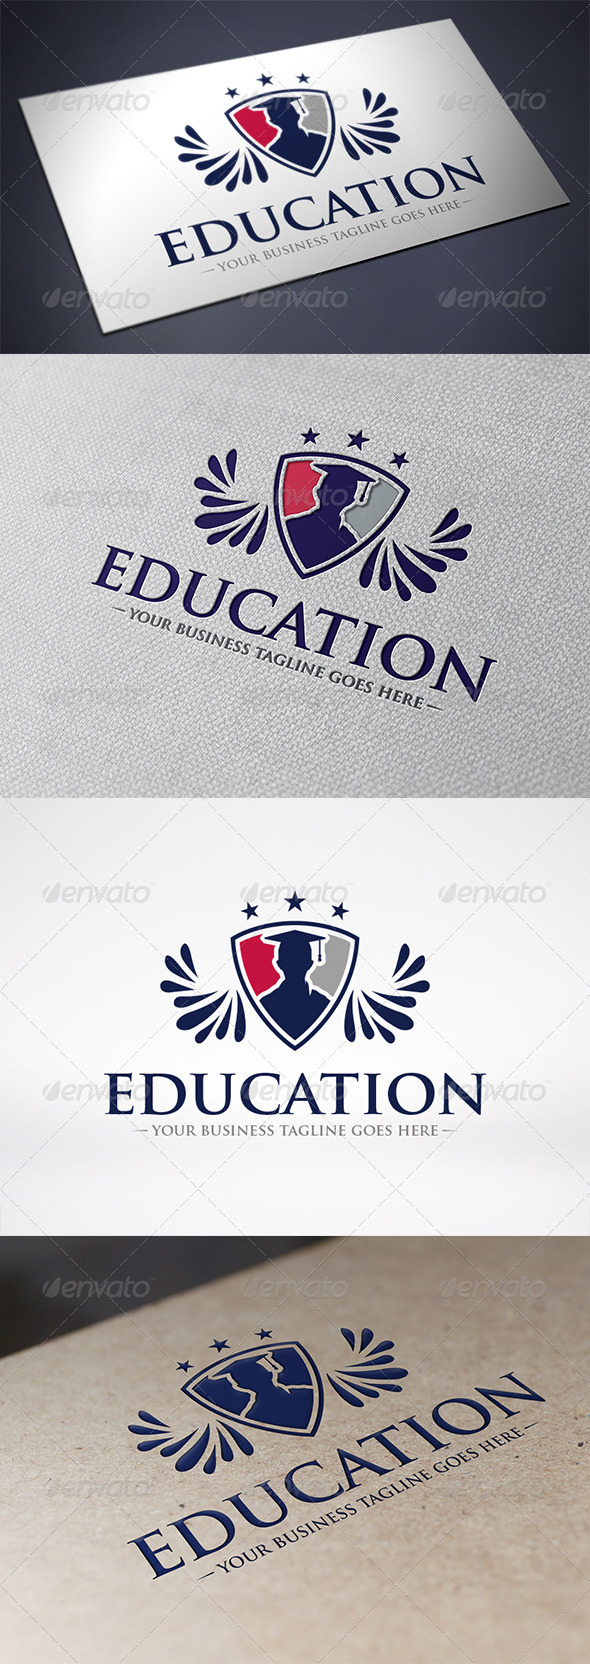 Education Logo Template - Crests Logo Templates